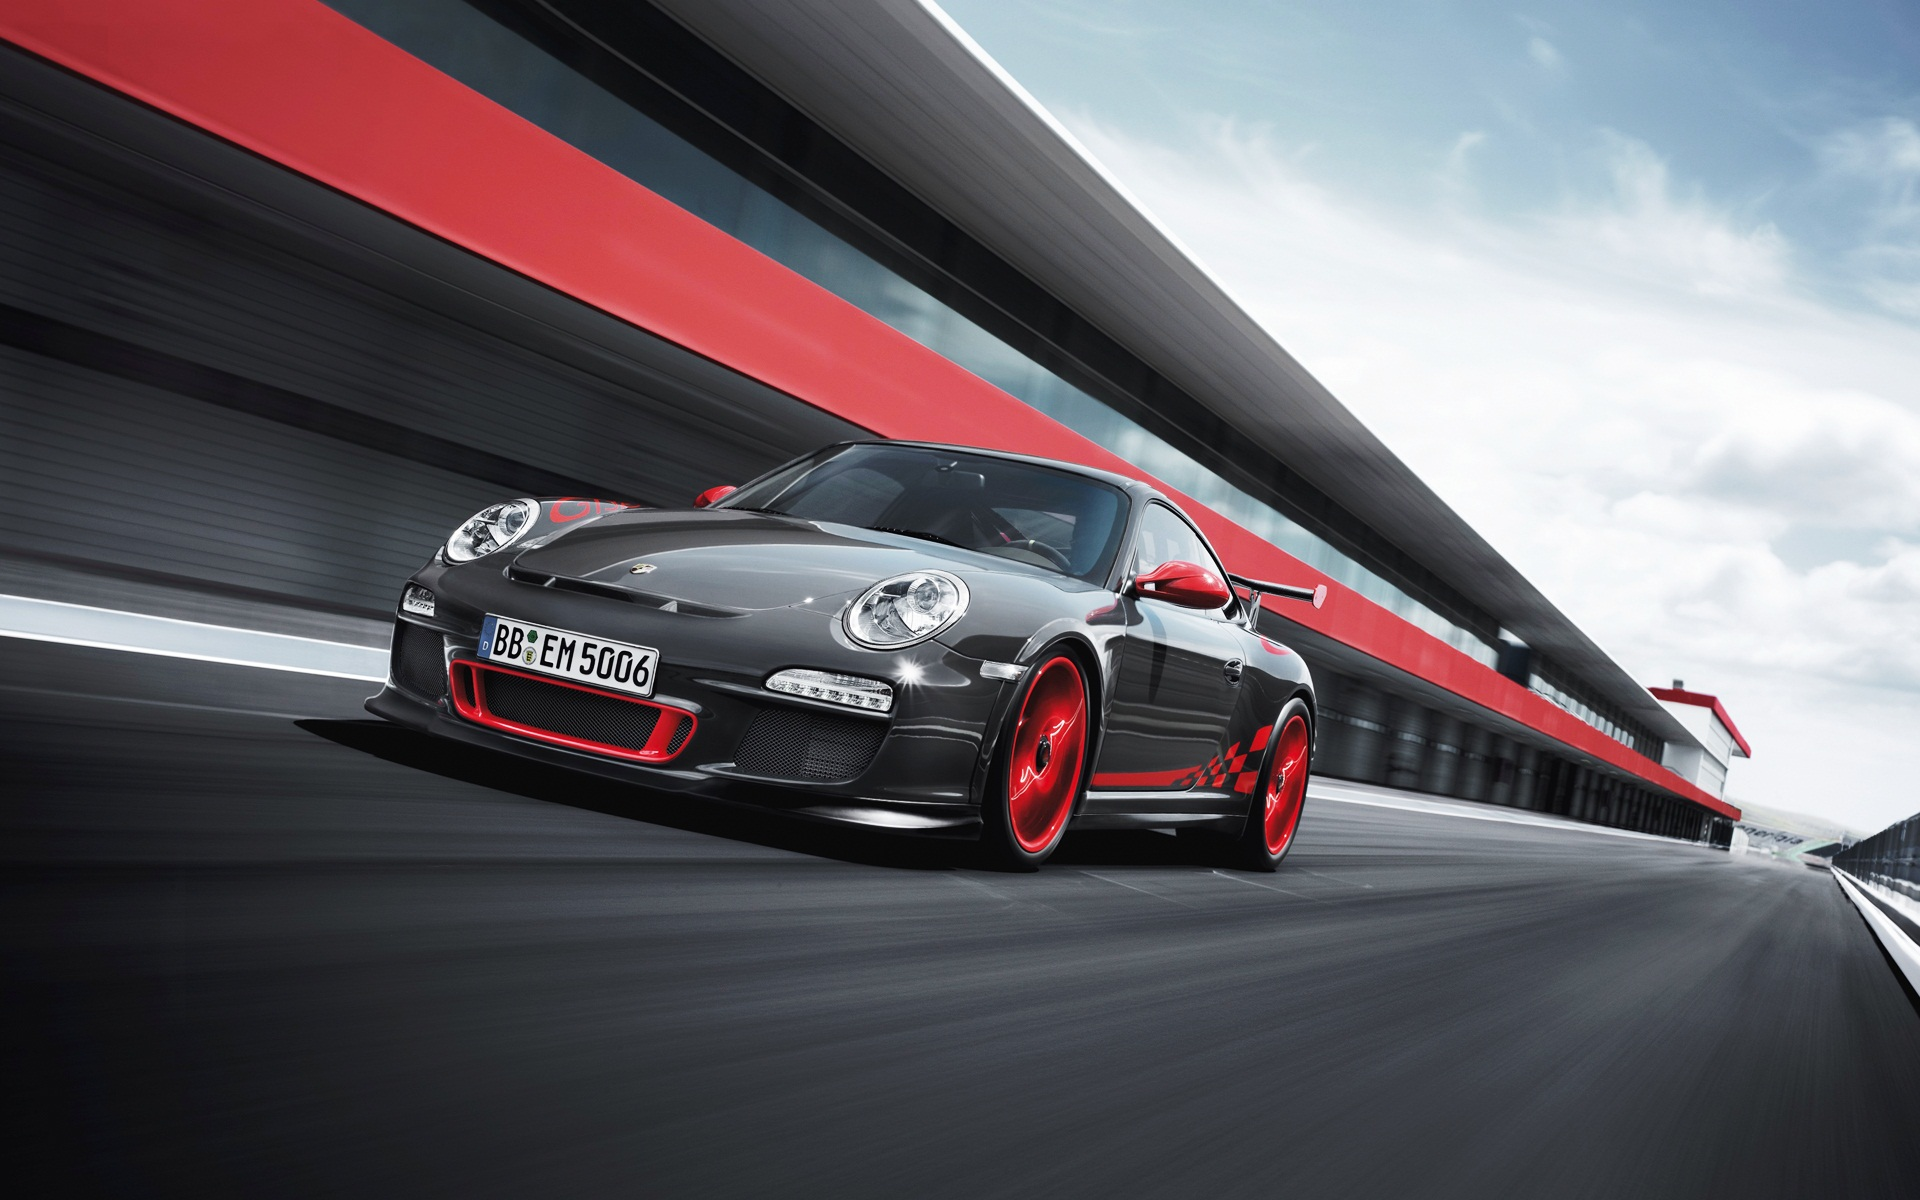 Free Download 2011 Porsche 911 Gt3 Rs Wallpapers Hd Wallpapers 1920x1200 For Your Desktop Mobile Tablet Explore 49 Porsche 911 Hd Wallpapers Porsche 911 Wallpaper Porsche Gt3 Wallpaper Porsche Desktop Wallpaper